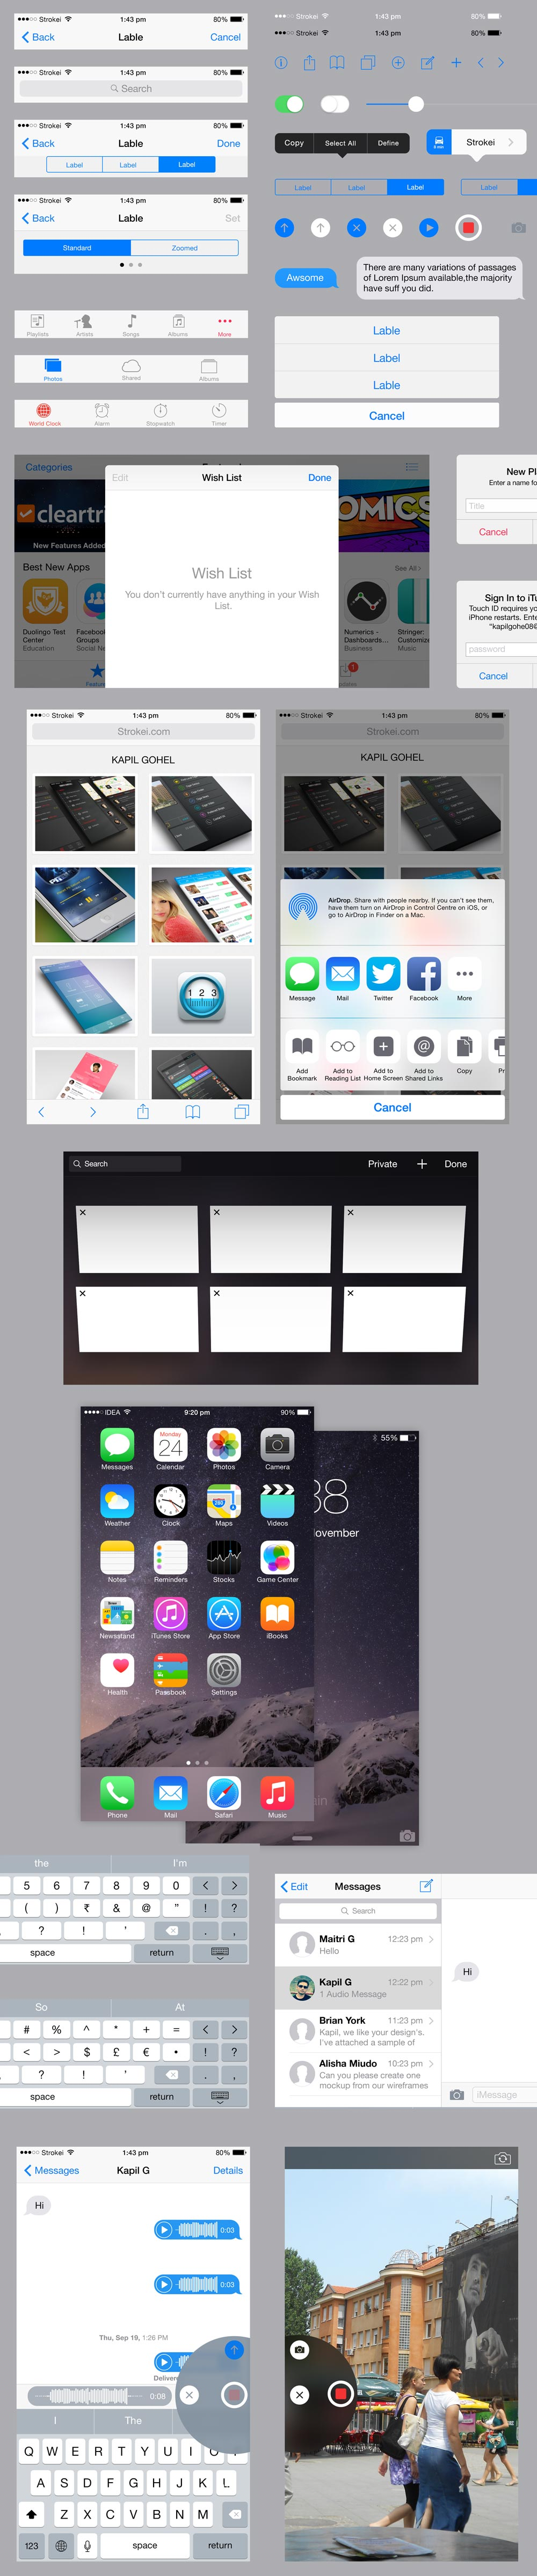 ios-iphone6plus-ui-kit